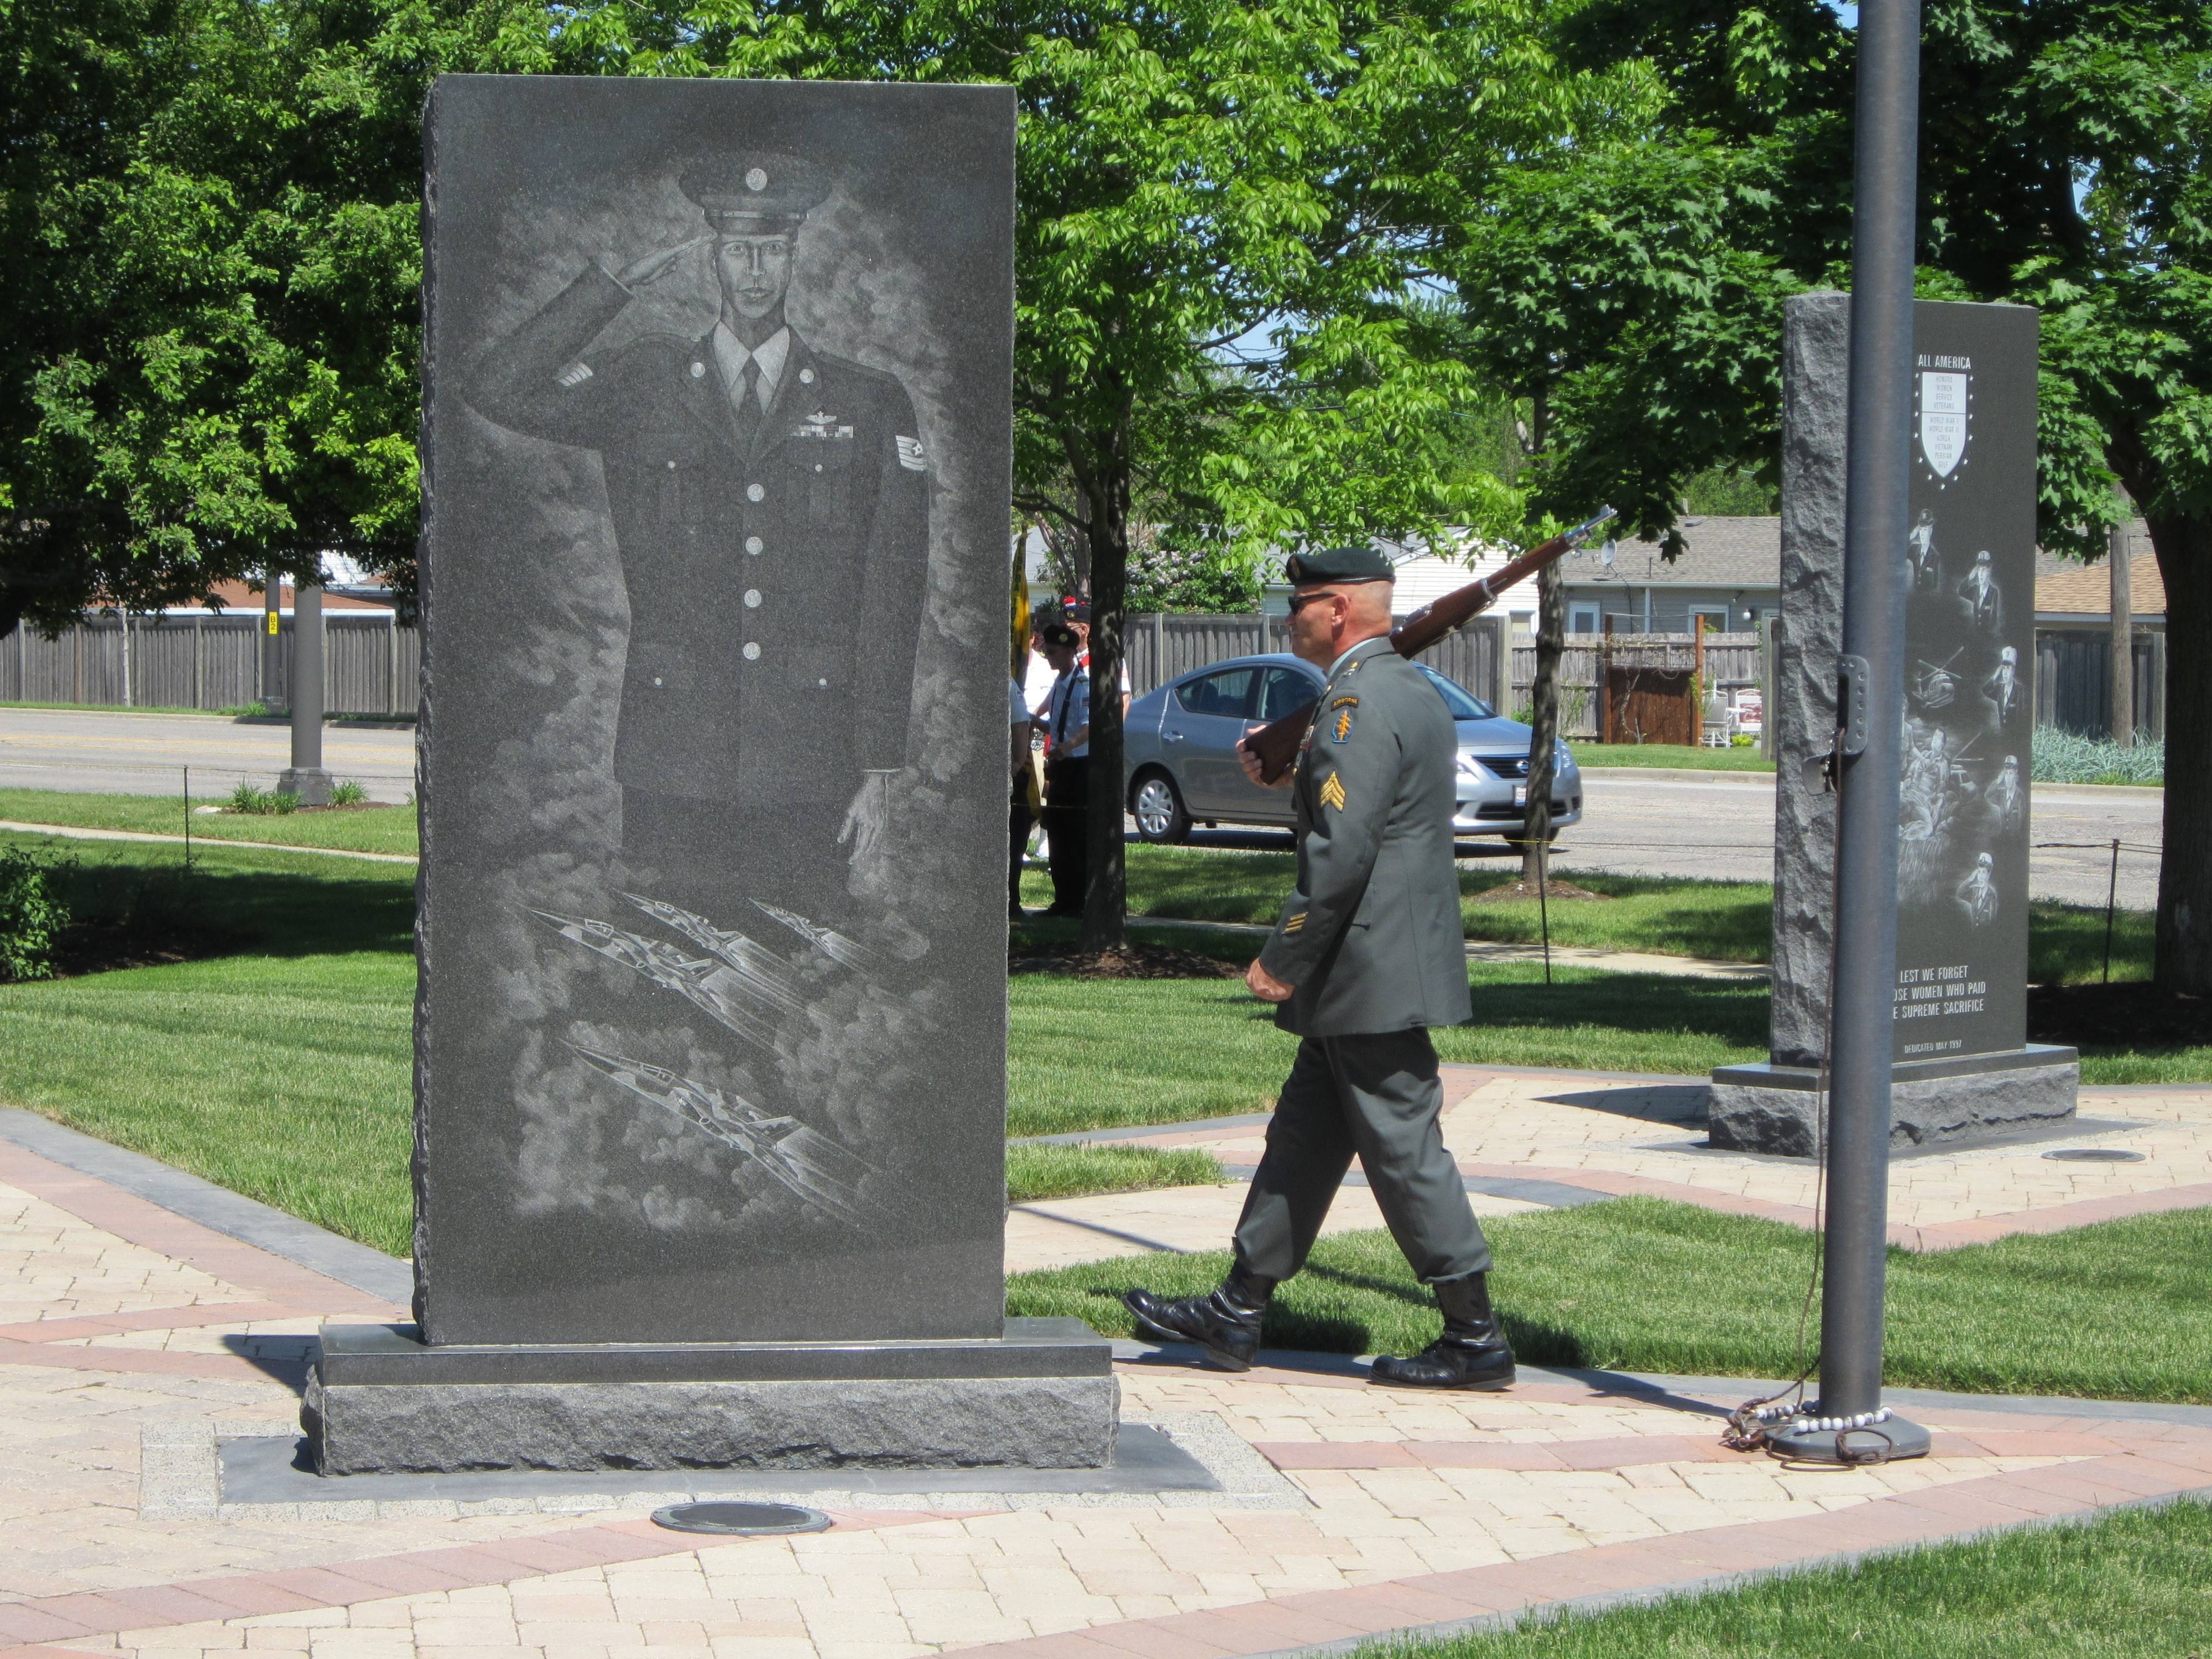 A solitary vigil guard marches through Streamwood's Veterans Memorial prior to Sunday's ceremony. The vigil guard began on Saturday evening and continued overnight.